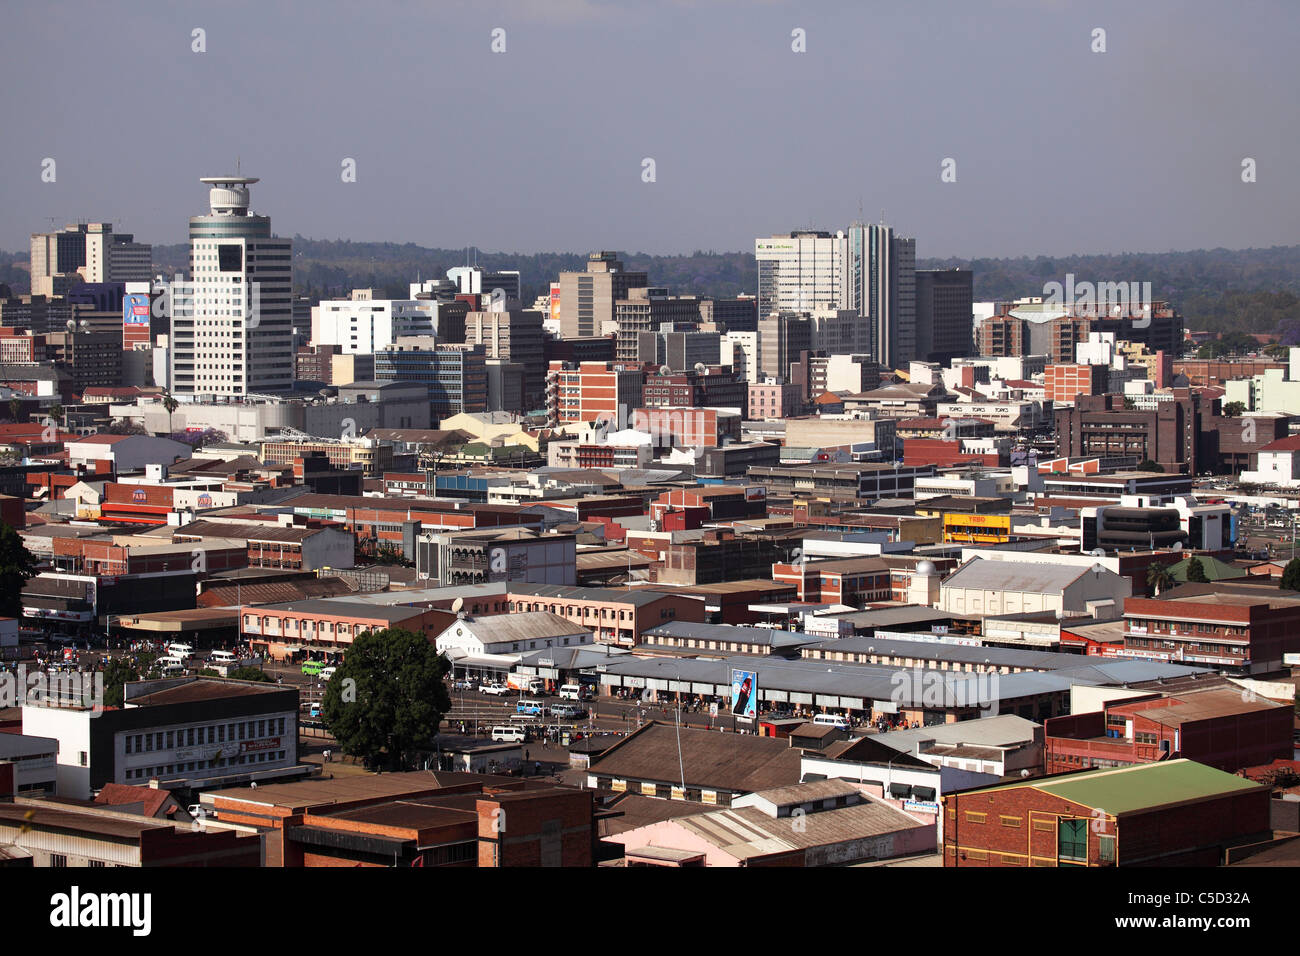 The heart of Zimbabwe - the capital of Harare 66